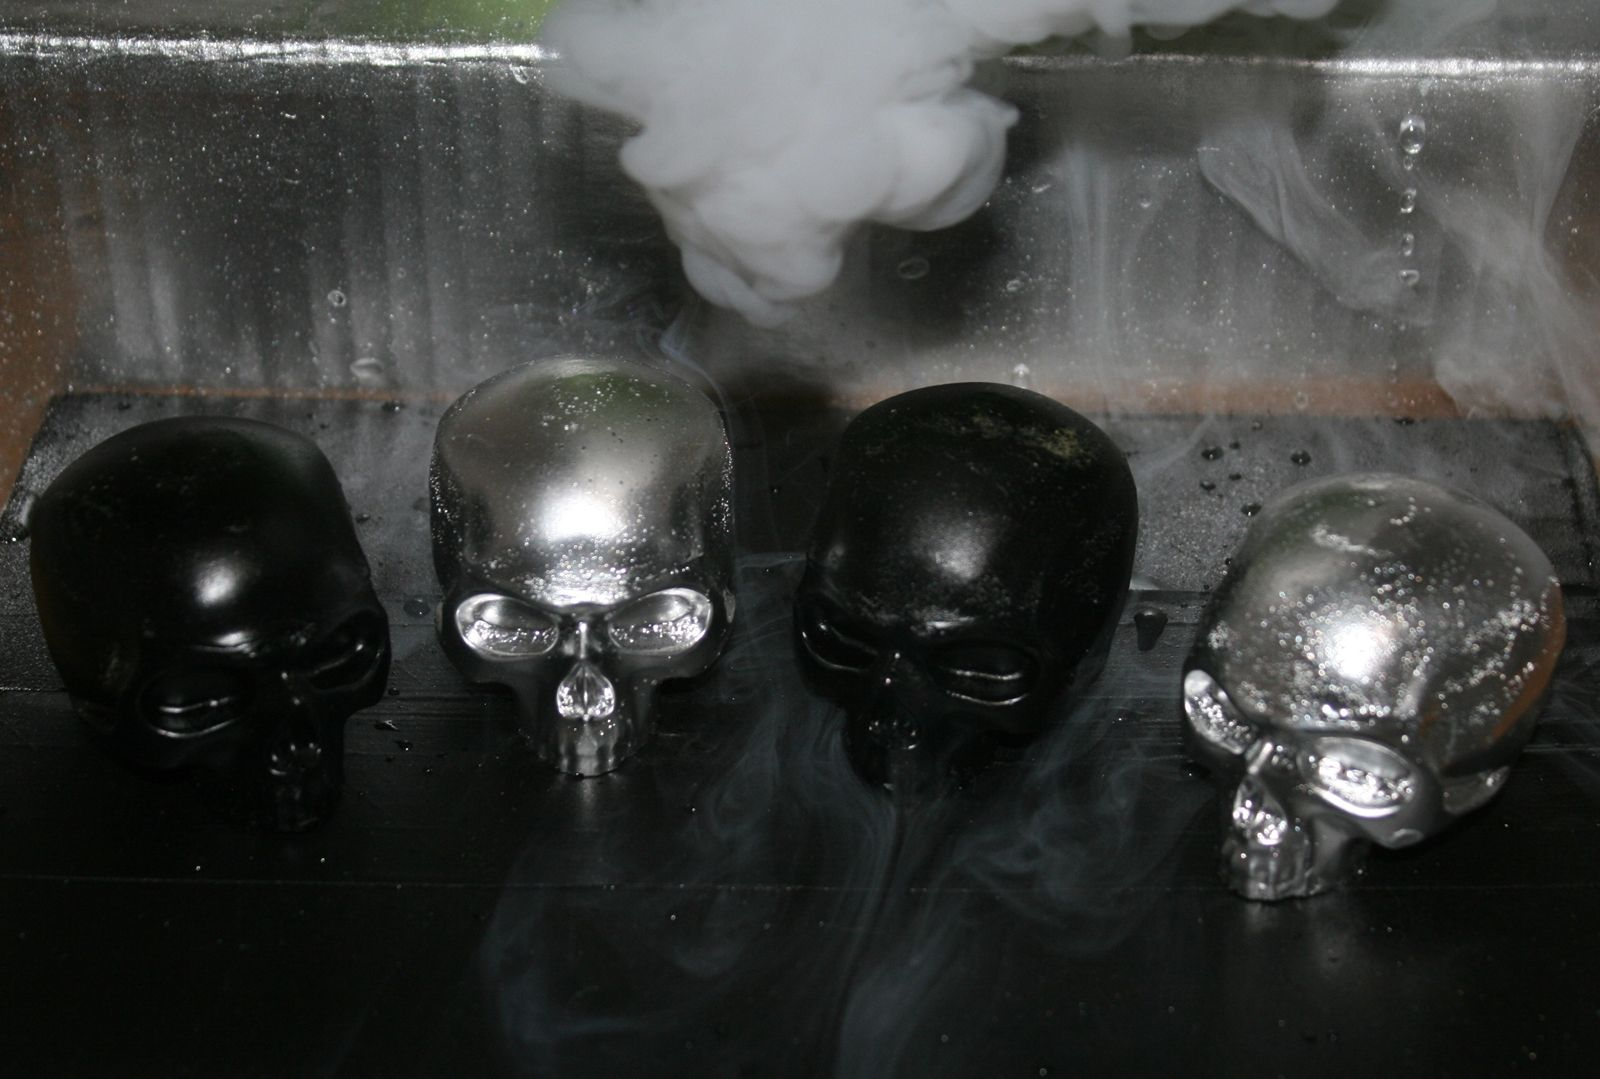 Icy Skullz Silver Chrome Black Resin Figures for sale poster buy purchase limited edition art